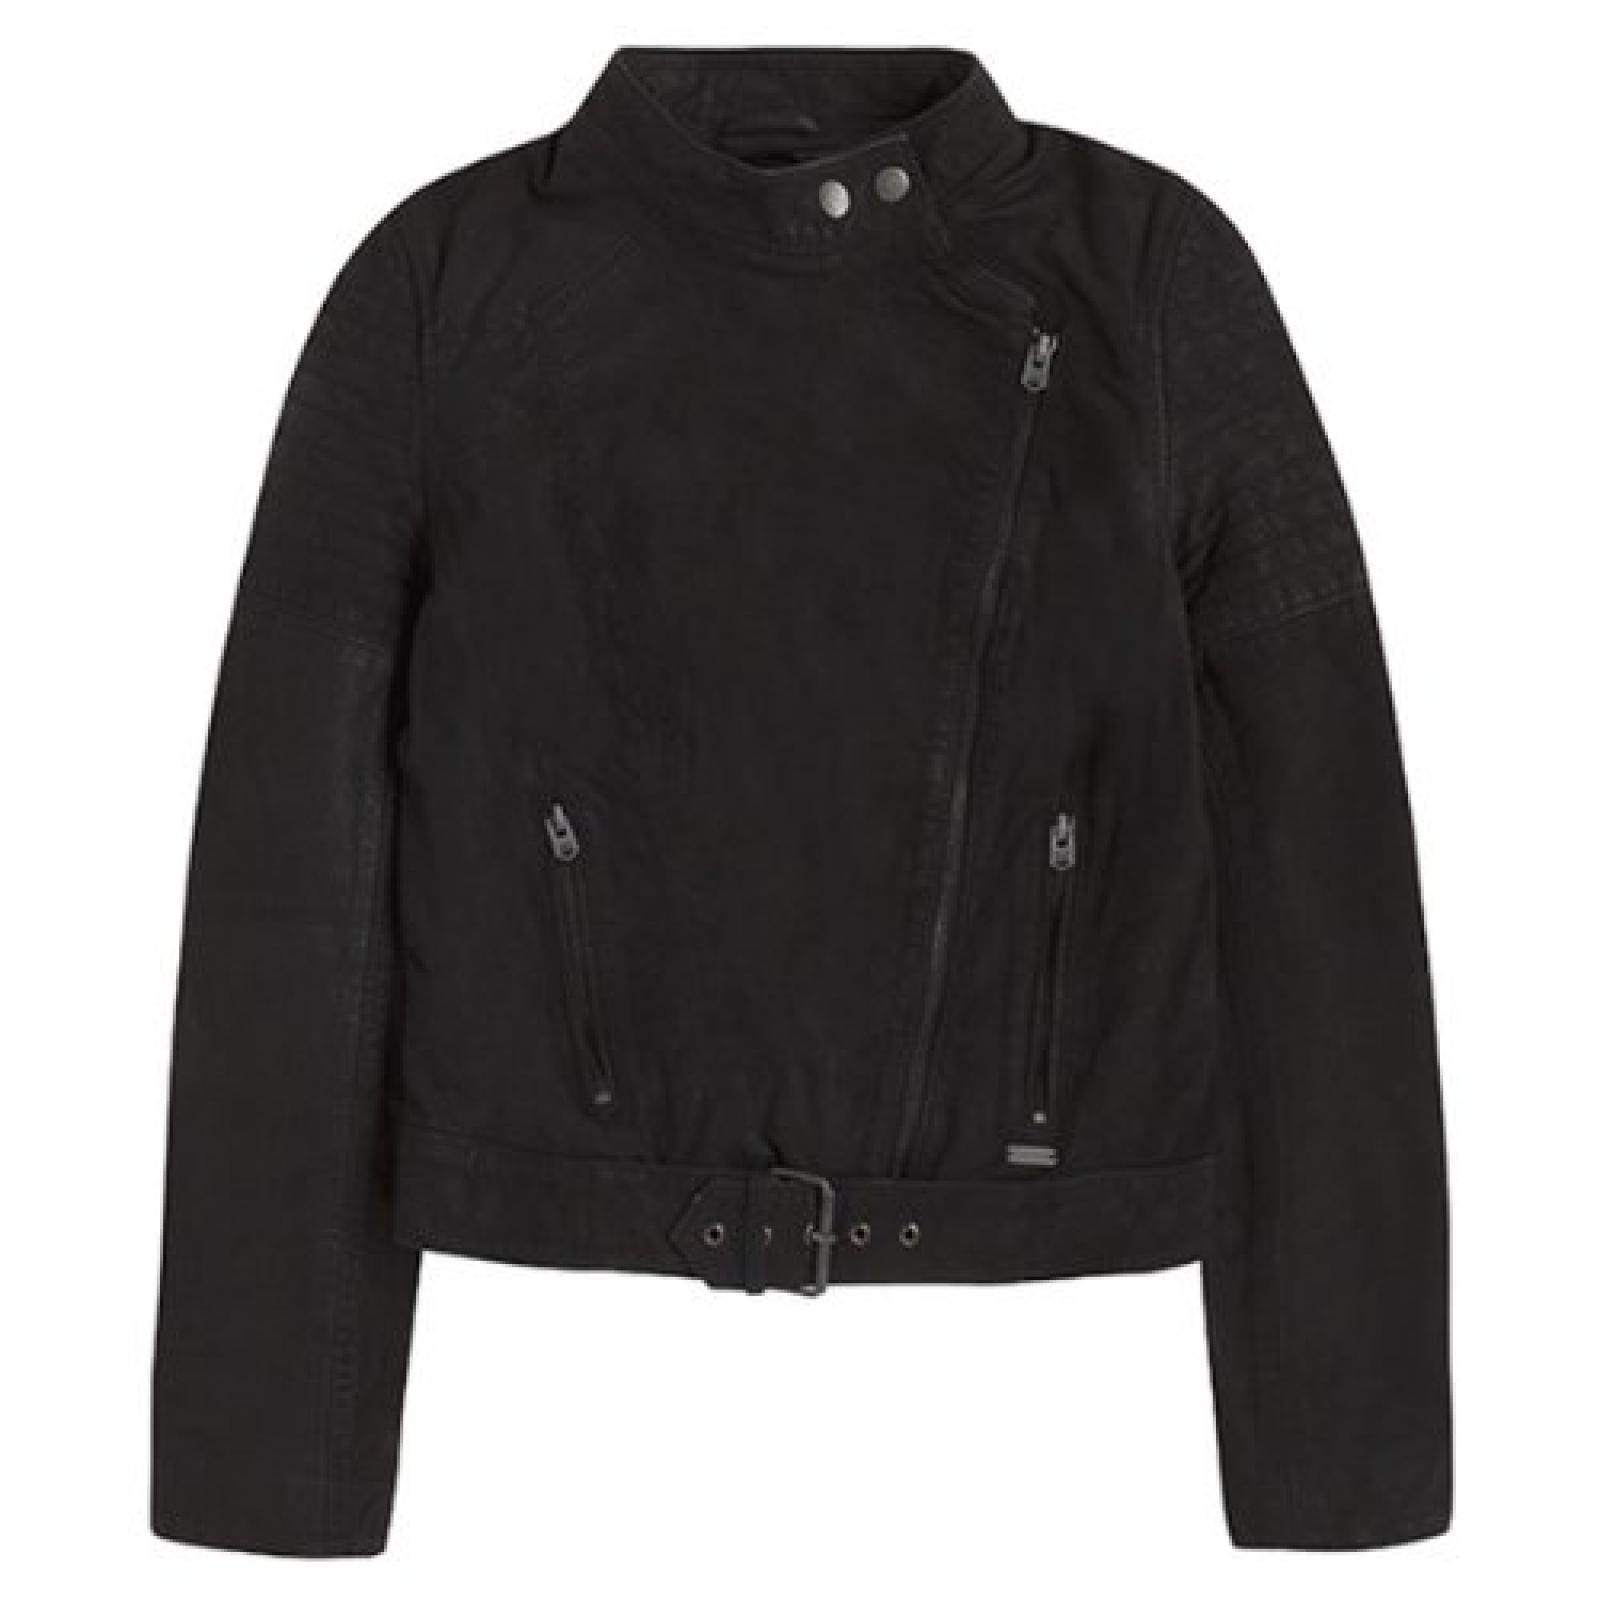 Pepe Jeans London, Lederjacke MORGAN Black